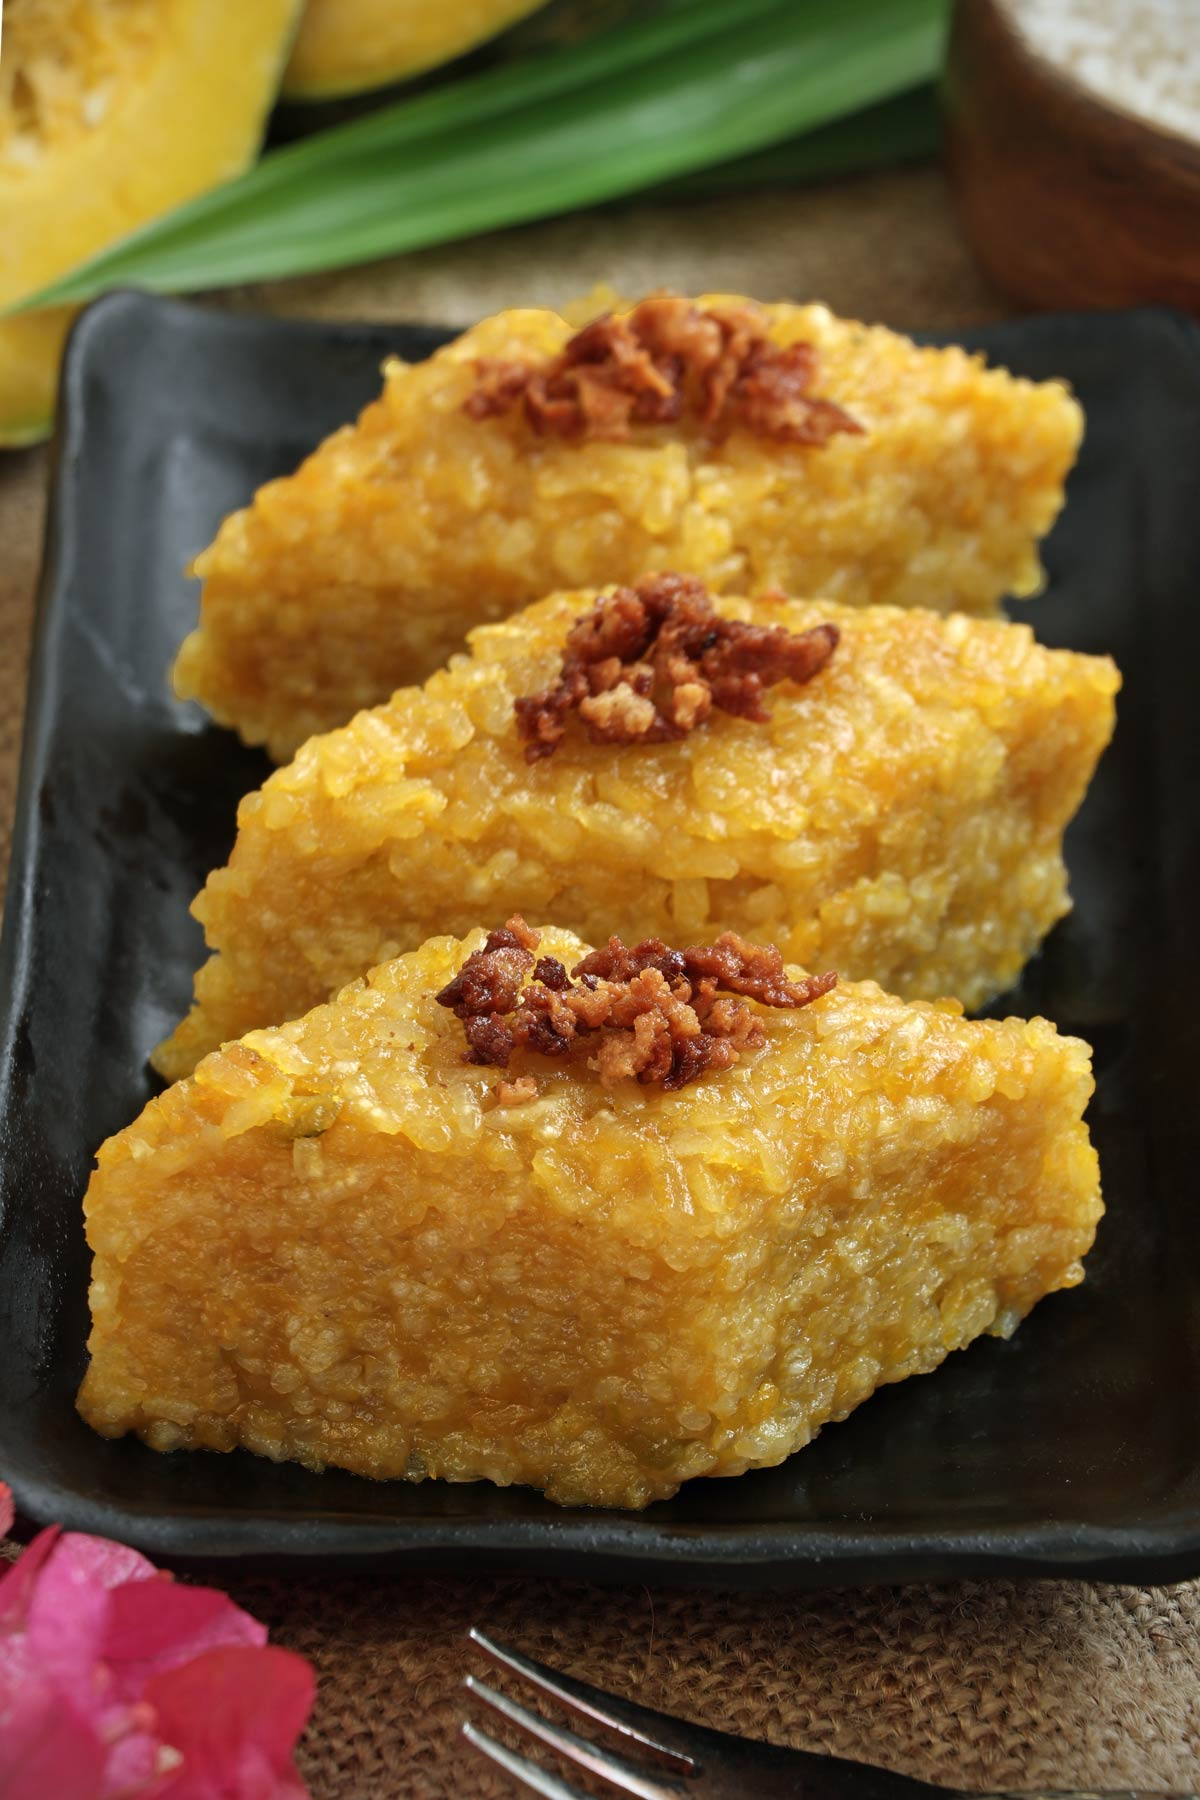 Biko Kalabasa or Sticky Rice Cake with squash cut into squares for serving.